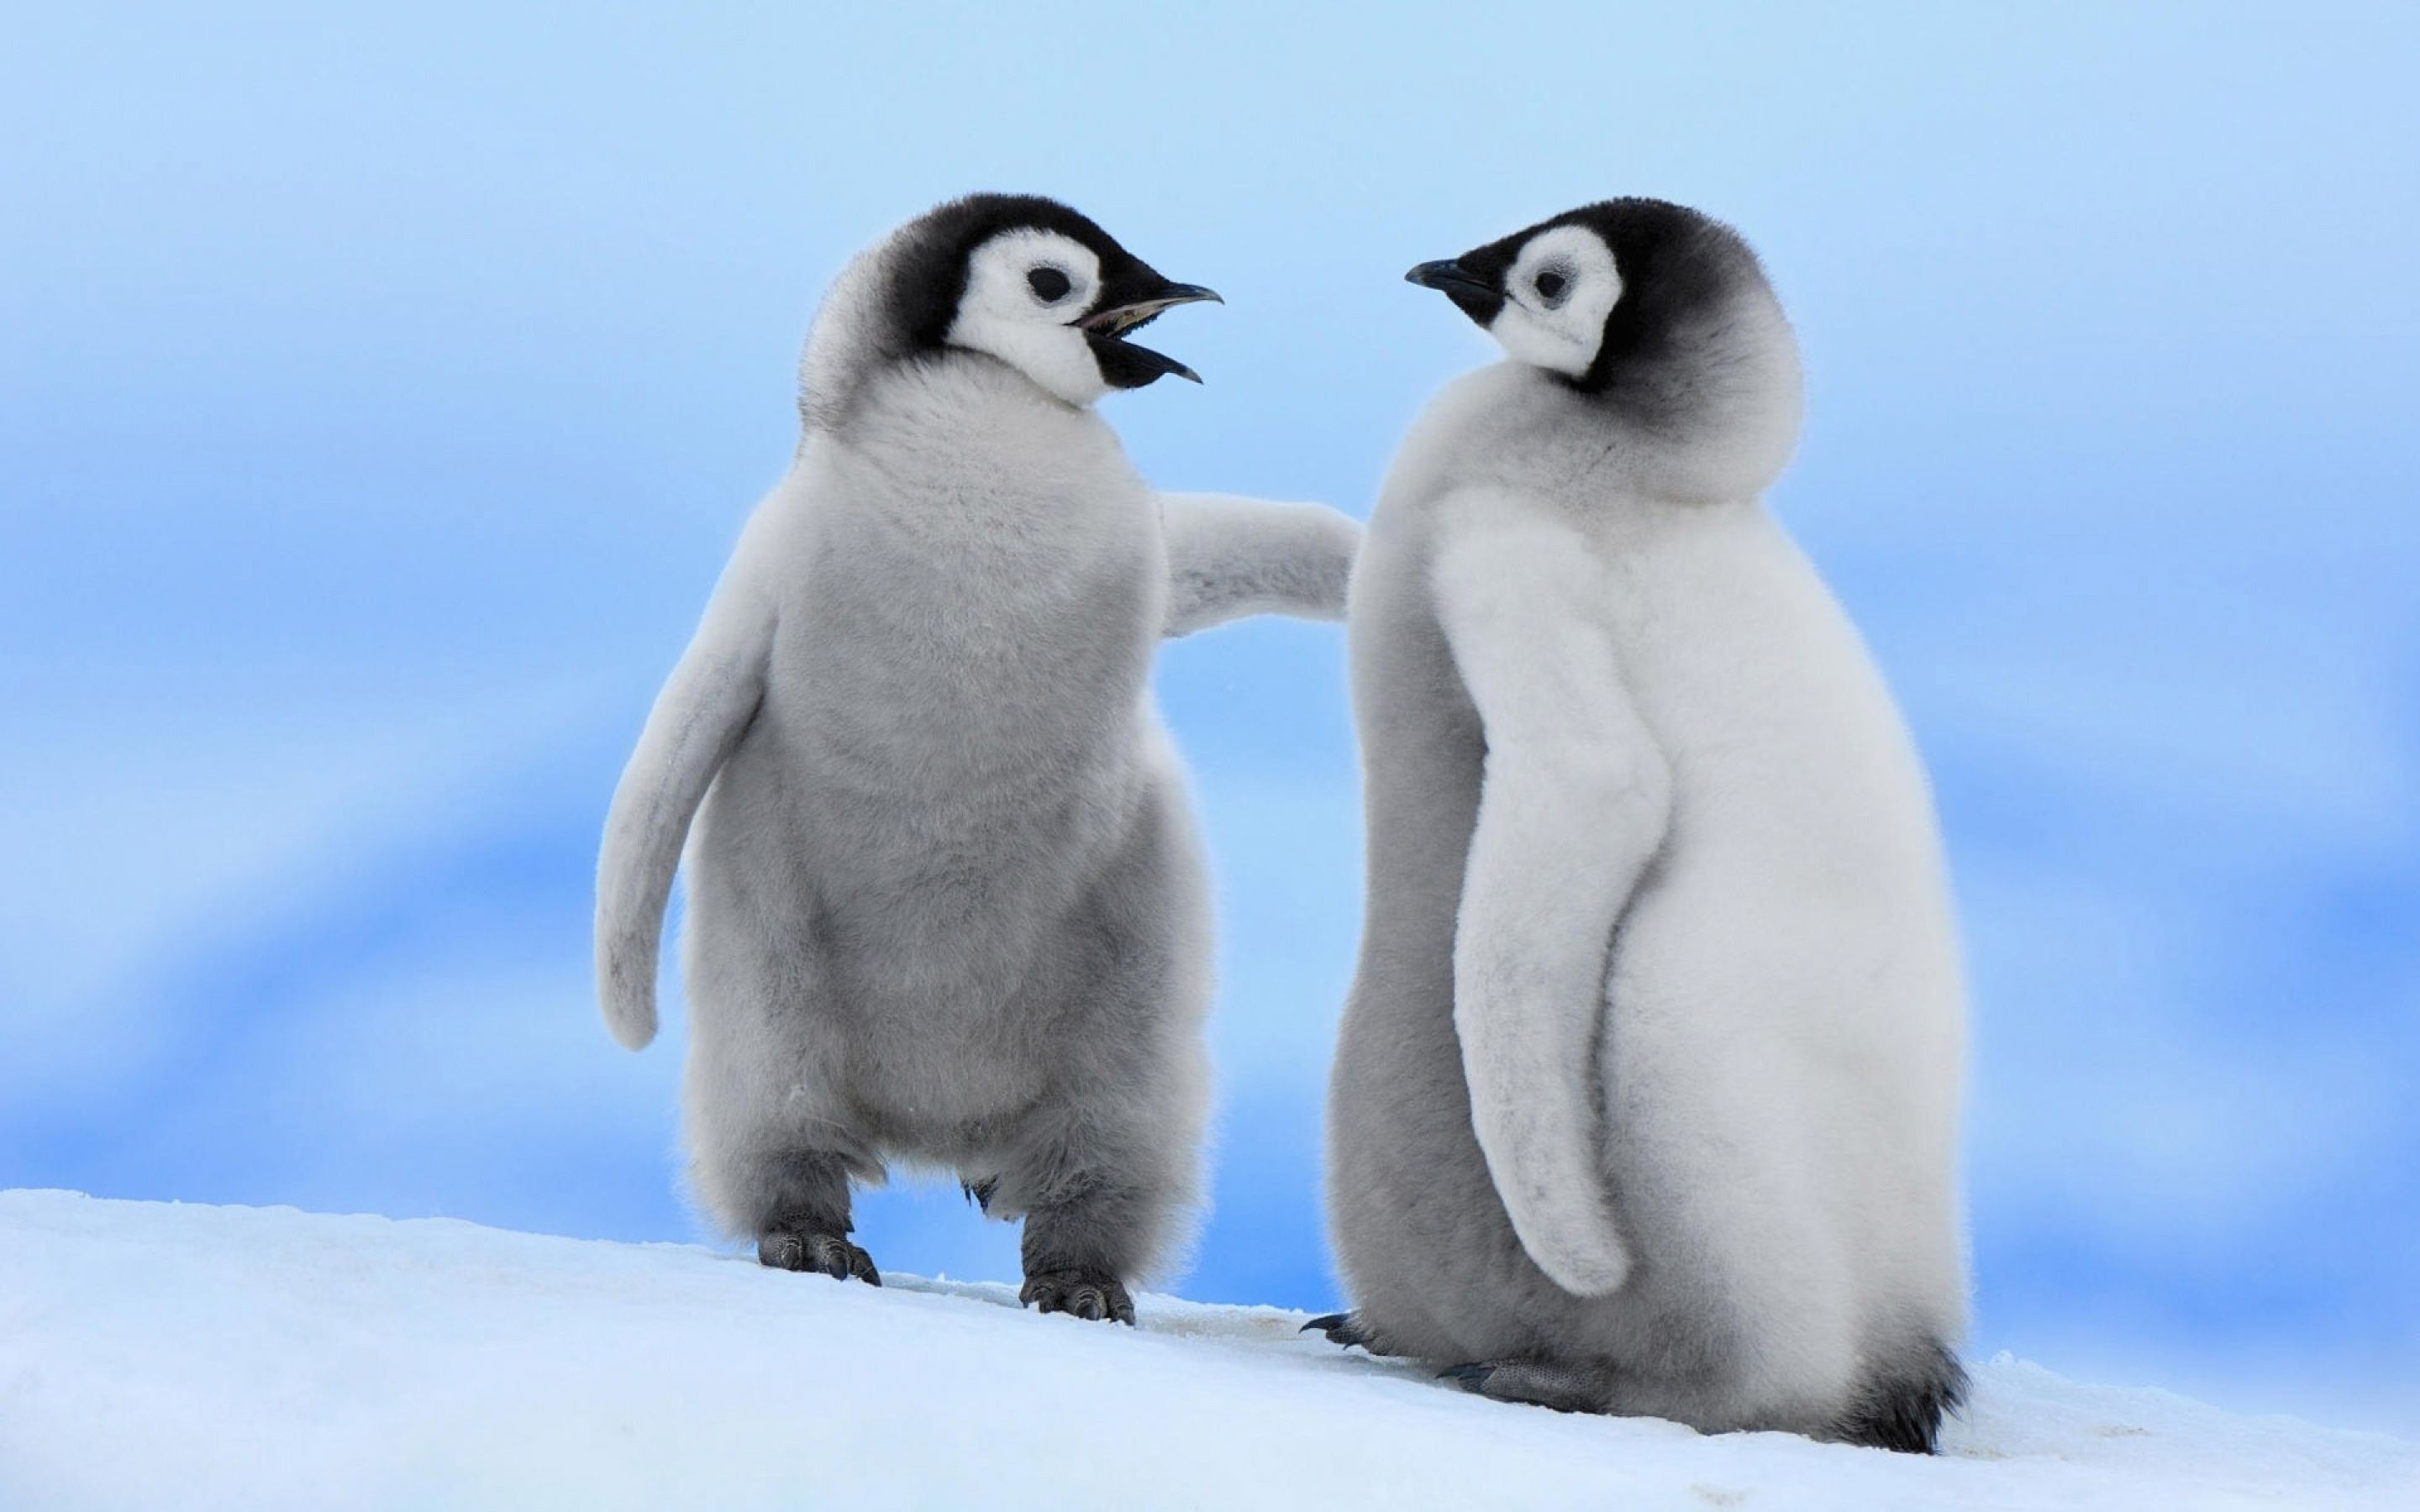 Cute Baby Penguin Couple 163.59 Kb